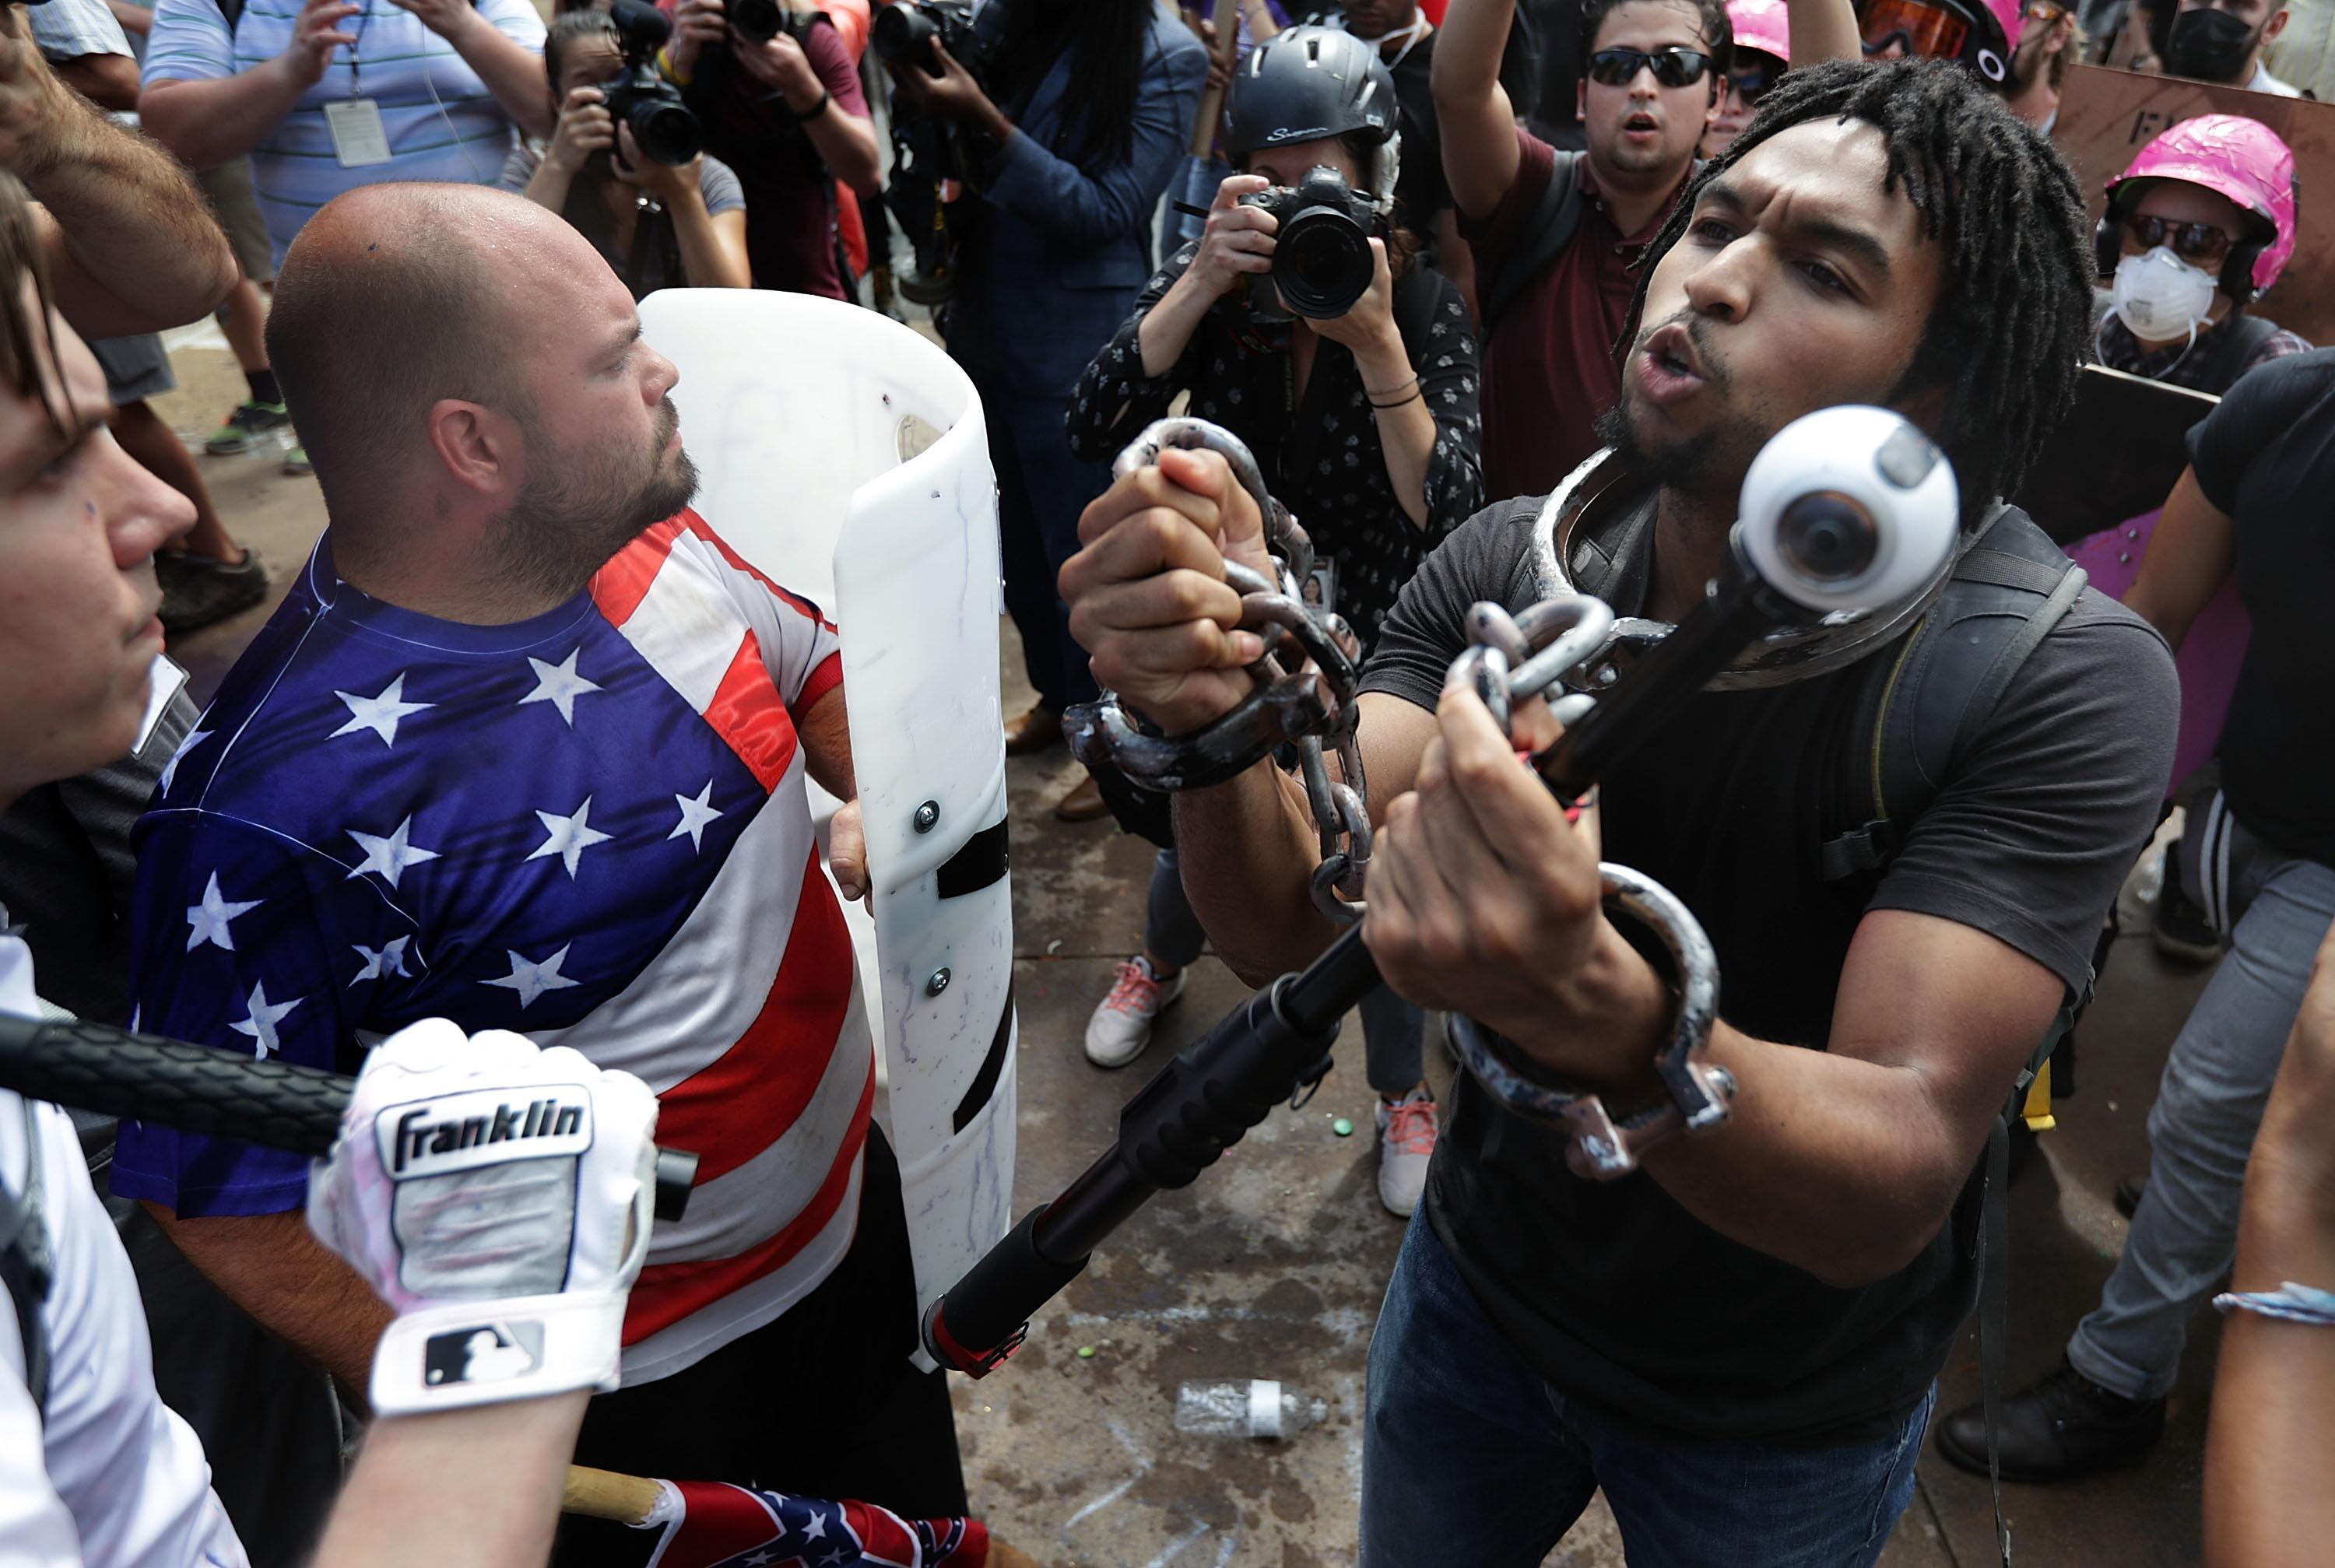 """White nationalists, neo-Nazis and members of the """"alt-right"""" exchange insluts with counterprotesters as they attempt to guard the entrance to Emancipation Park during the Unite the Right rally August 12, 2017 in Charlottesville, Virginia."""